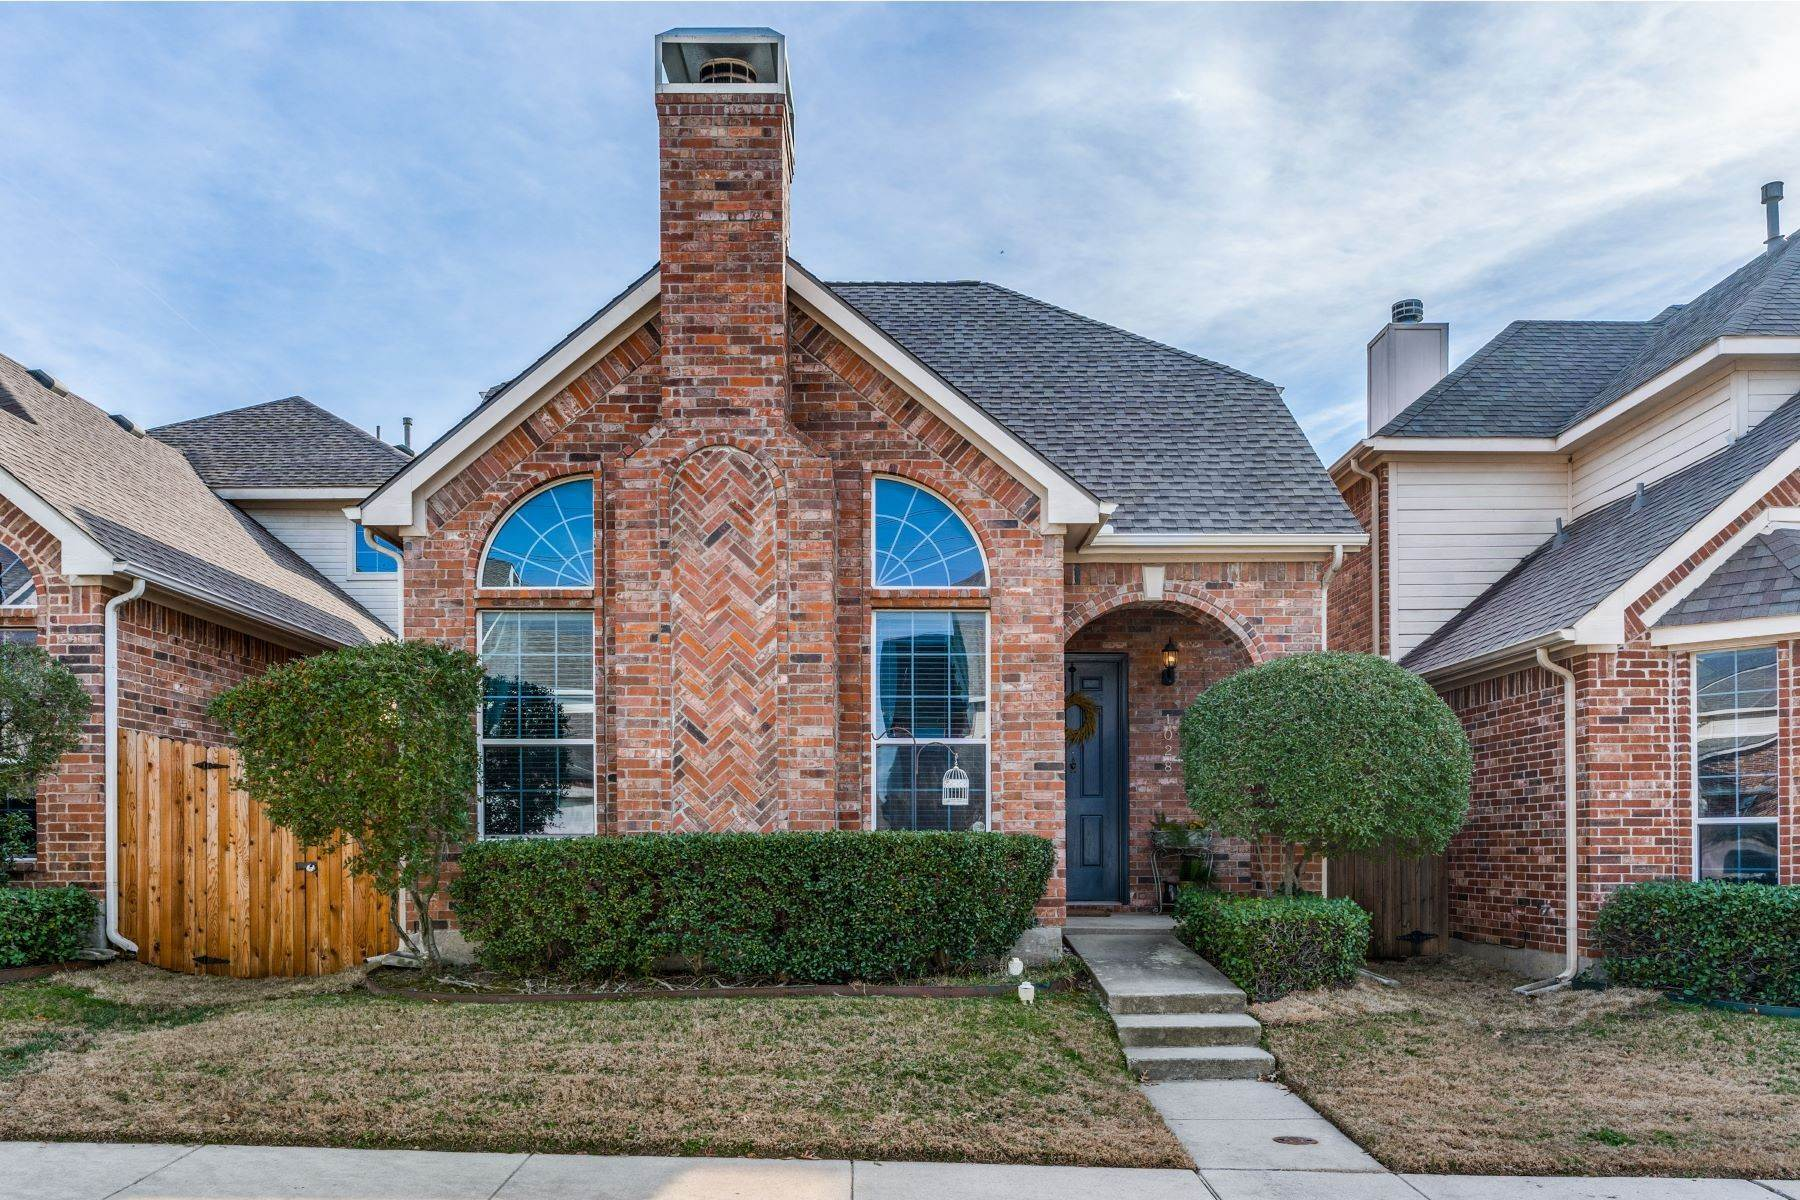 Single Family Homes for Sale at A Gem in Bluffview of Carrollton 1028 Alyssa Lane Carrollton, Texas 75006 United States